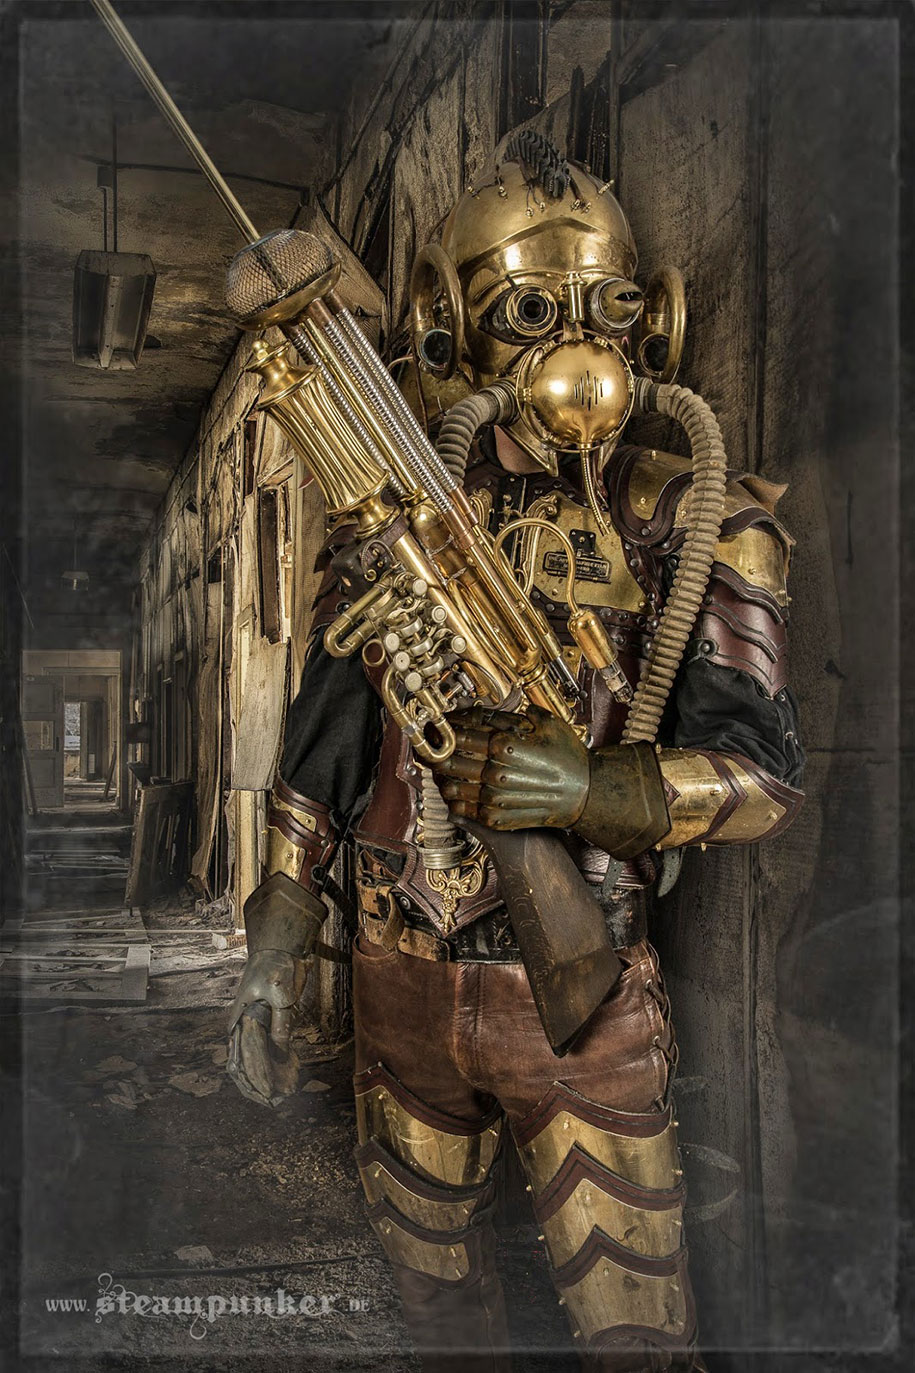 cosplay-costumes-steampunk-art-armor-clothing-alexander-schlesier-4